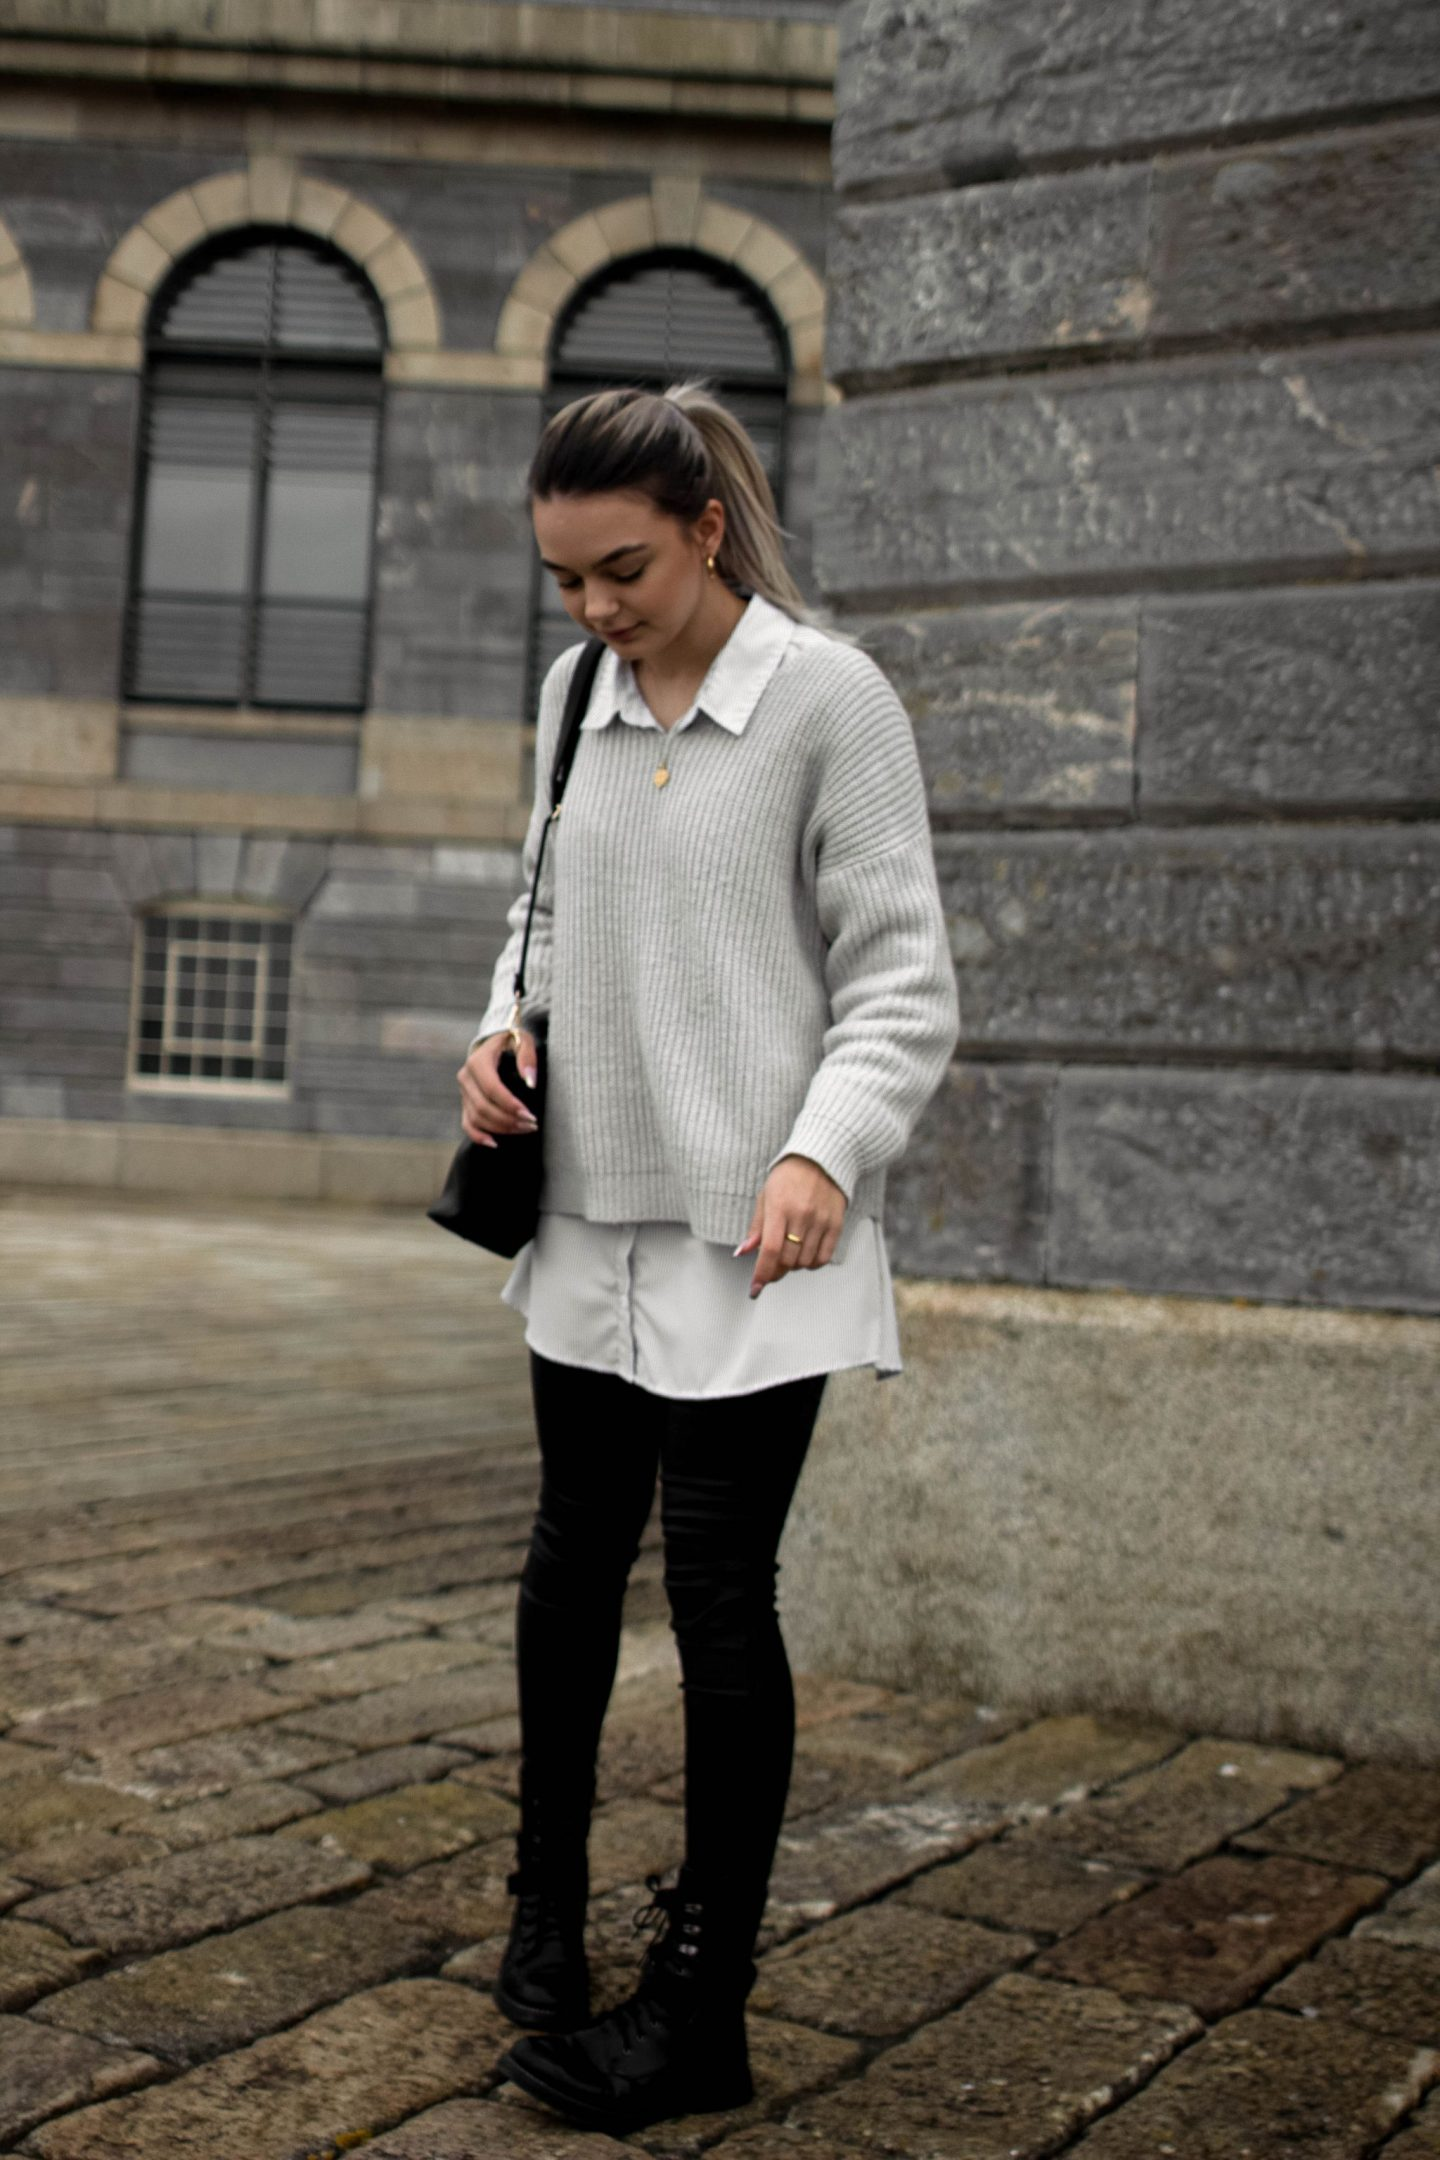 What you need to know about making your wardrobe simple, minimalistic and #Goals.